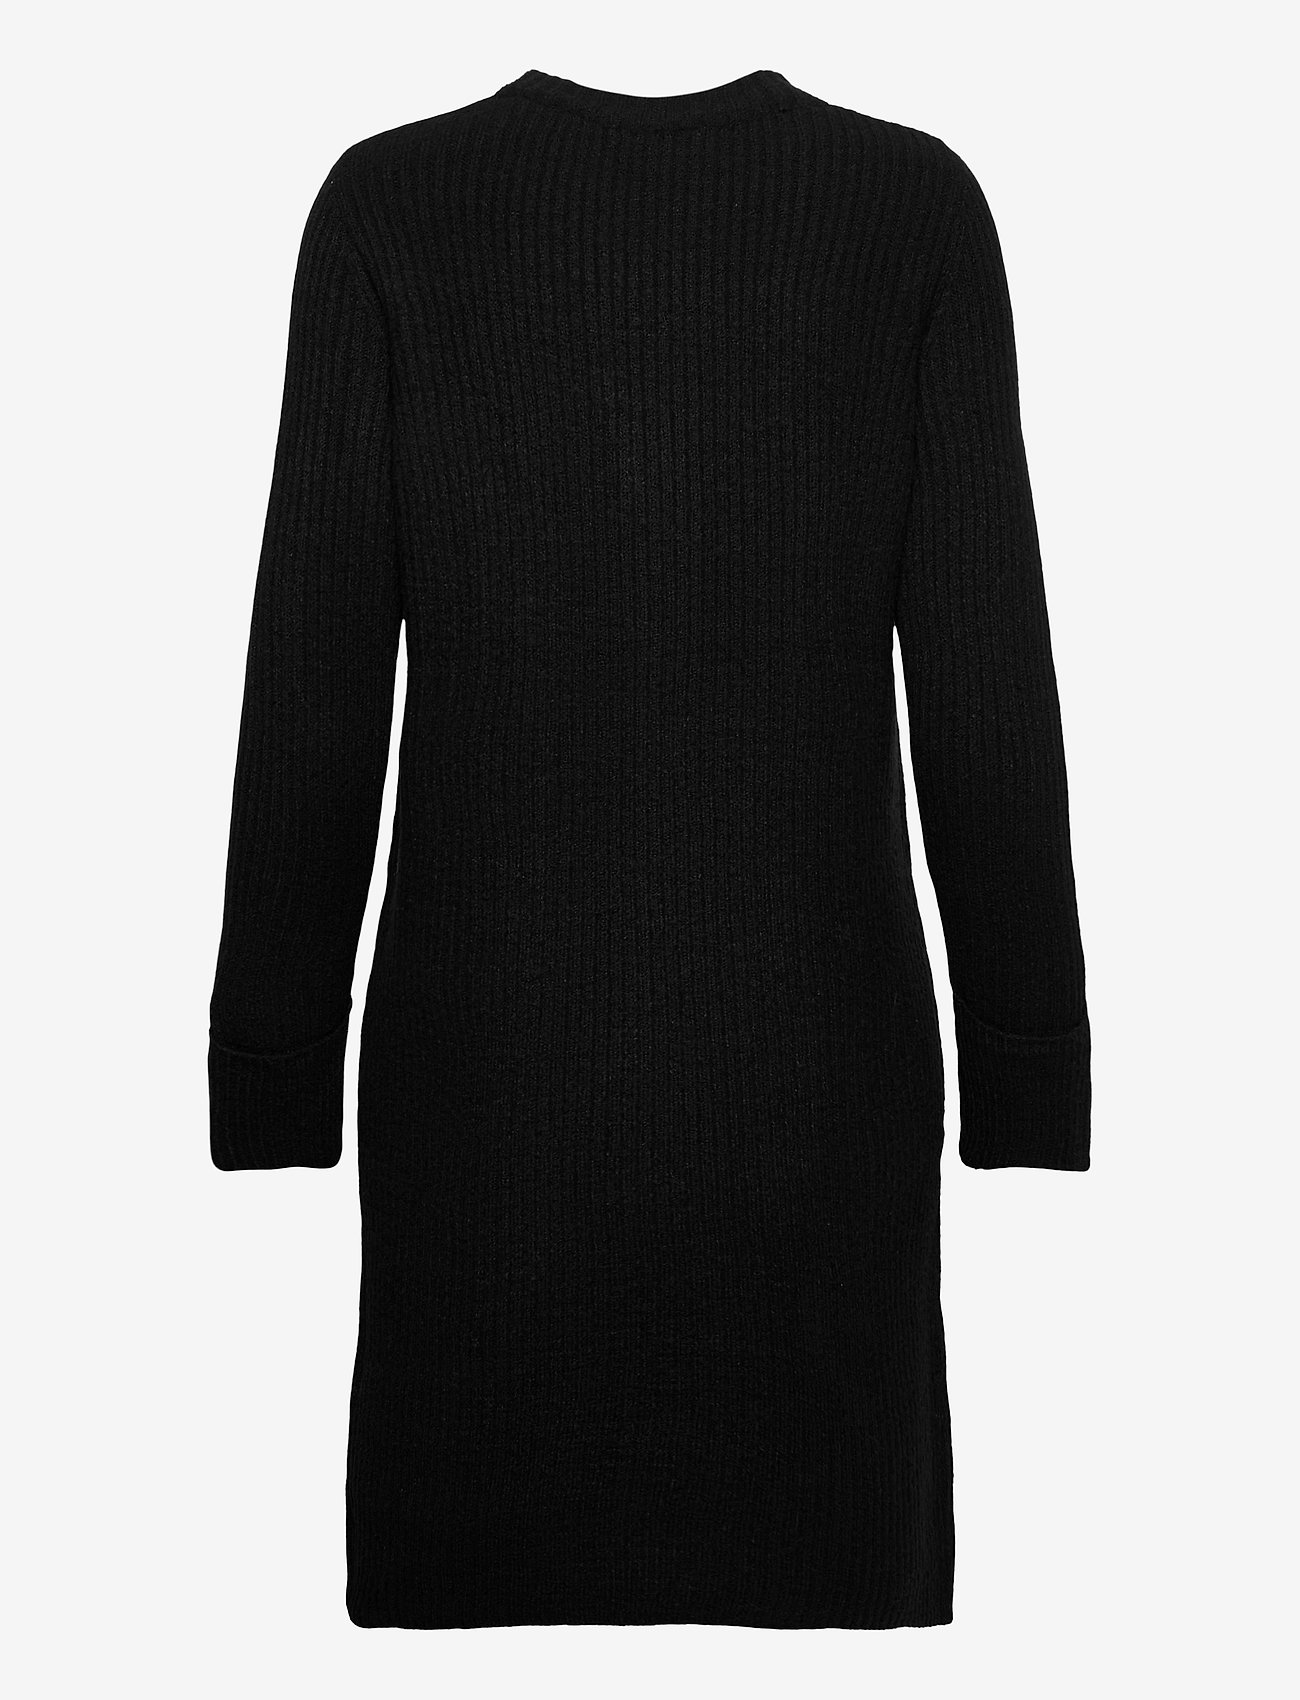 b.young - BYNORA DRESS - - strikkjoler - black - 1